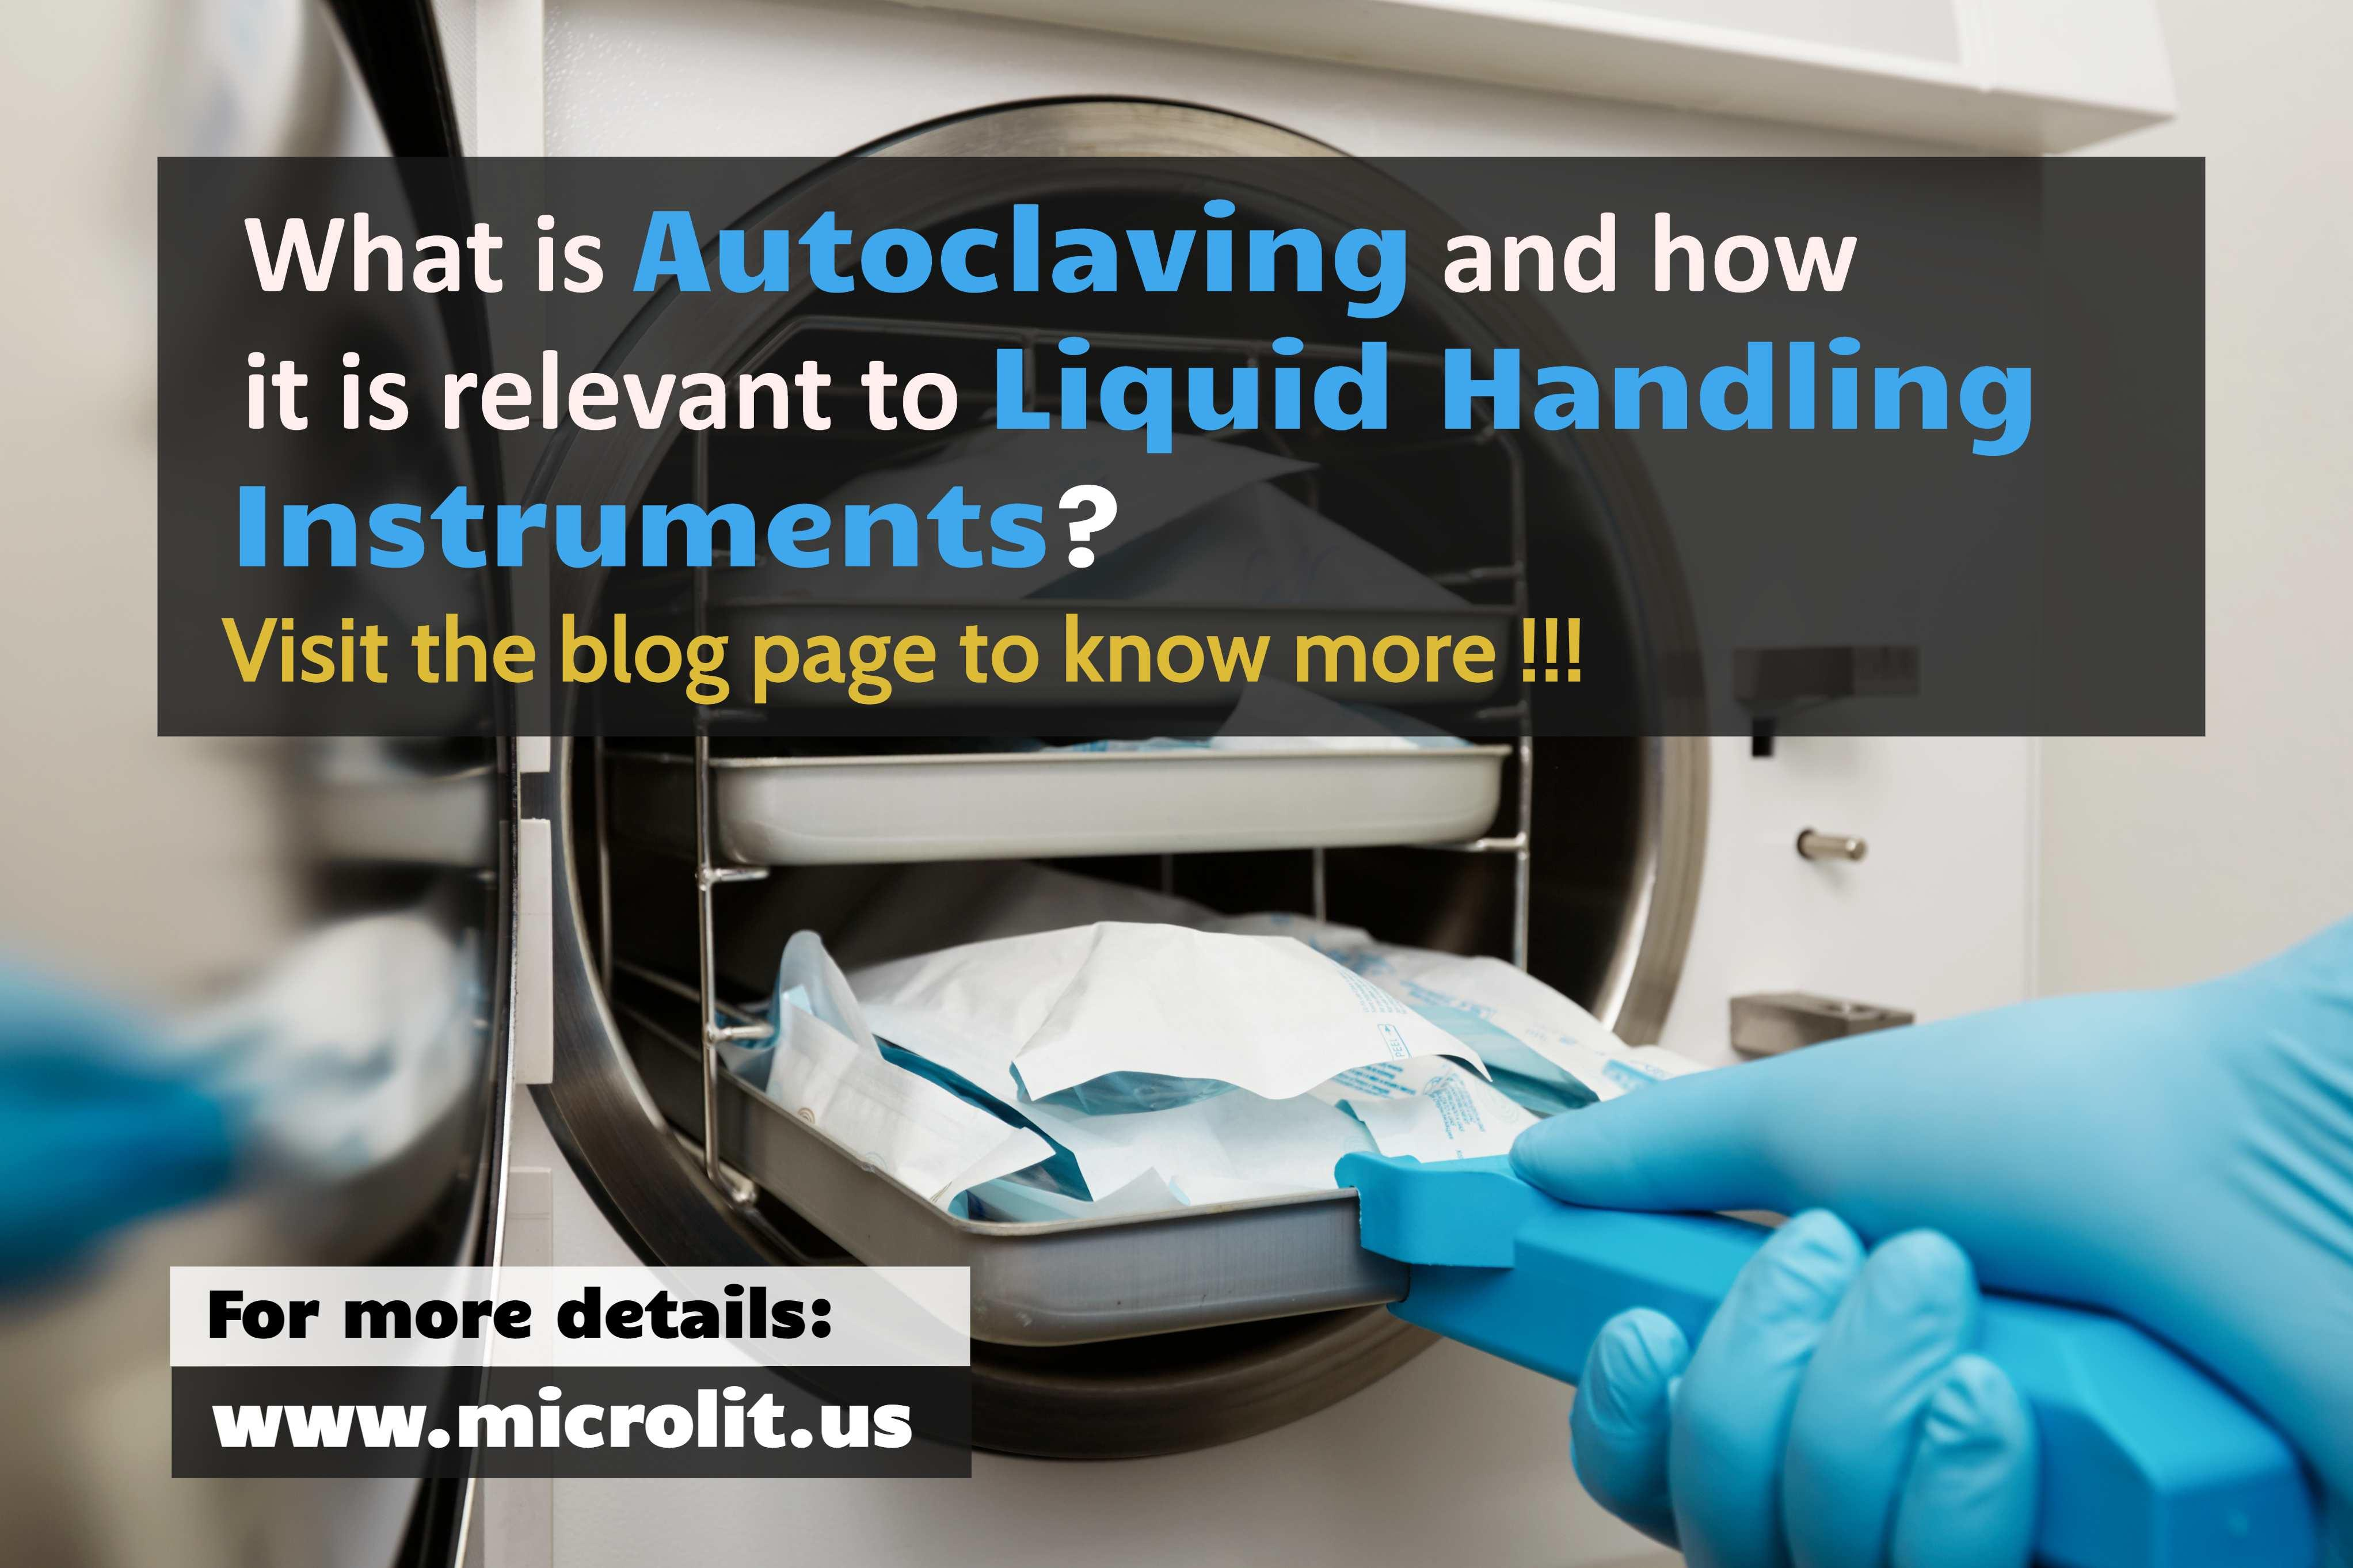 Image - Sometime, spot #sterilization or external cleaning is not enough to ensure the #laboratory and technician fro...